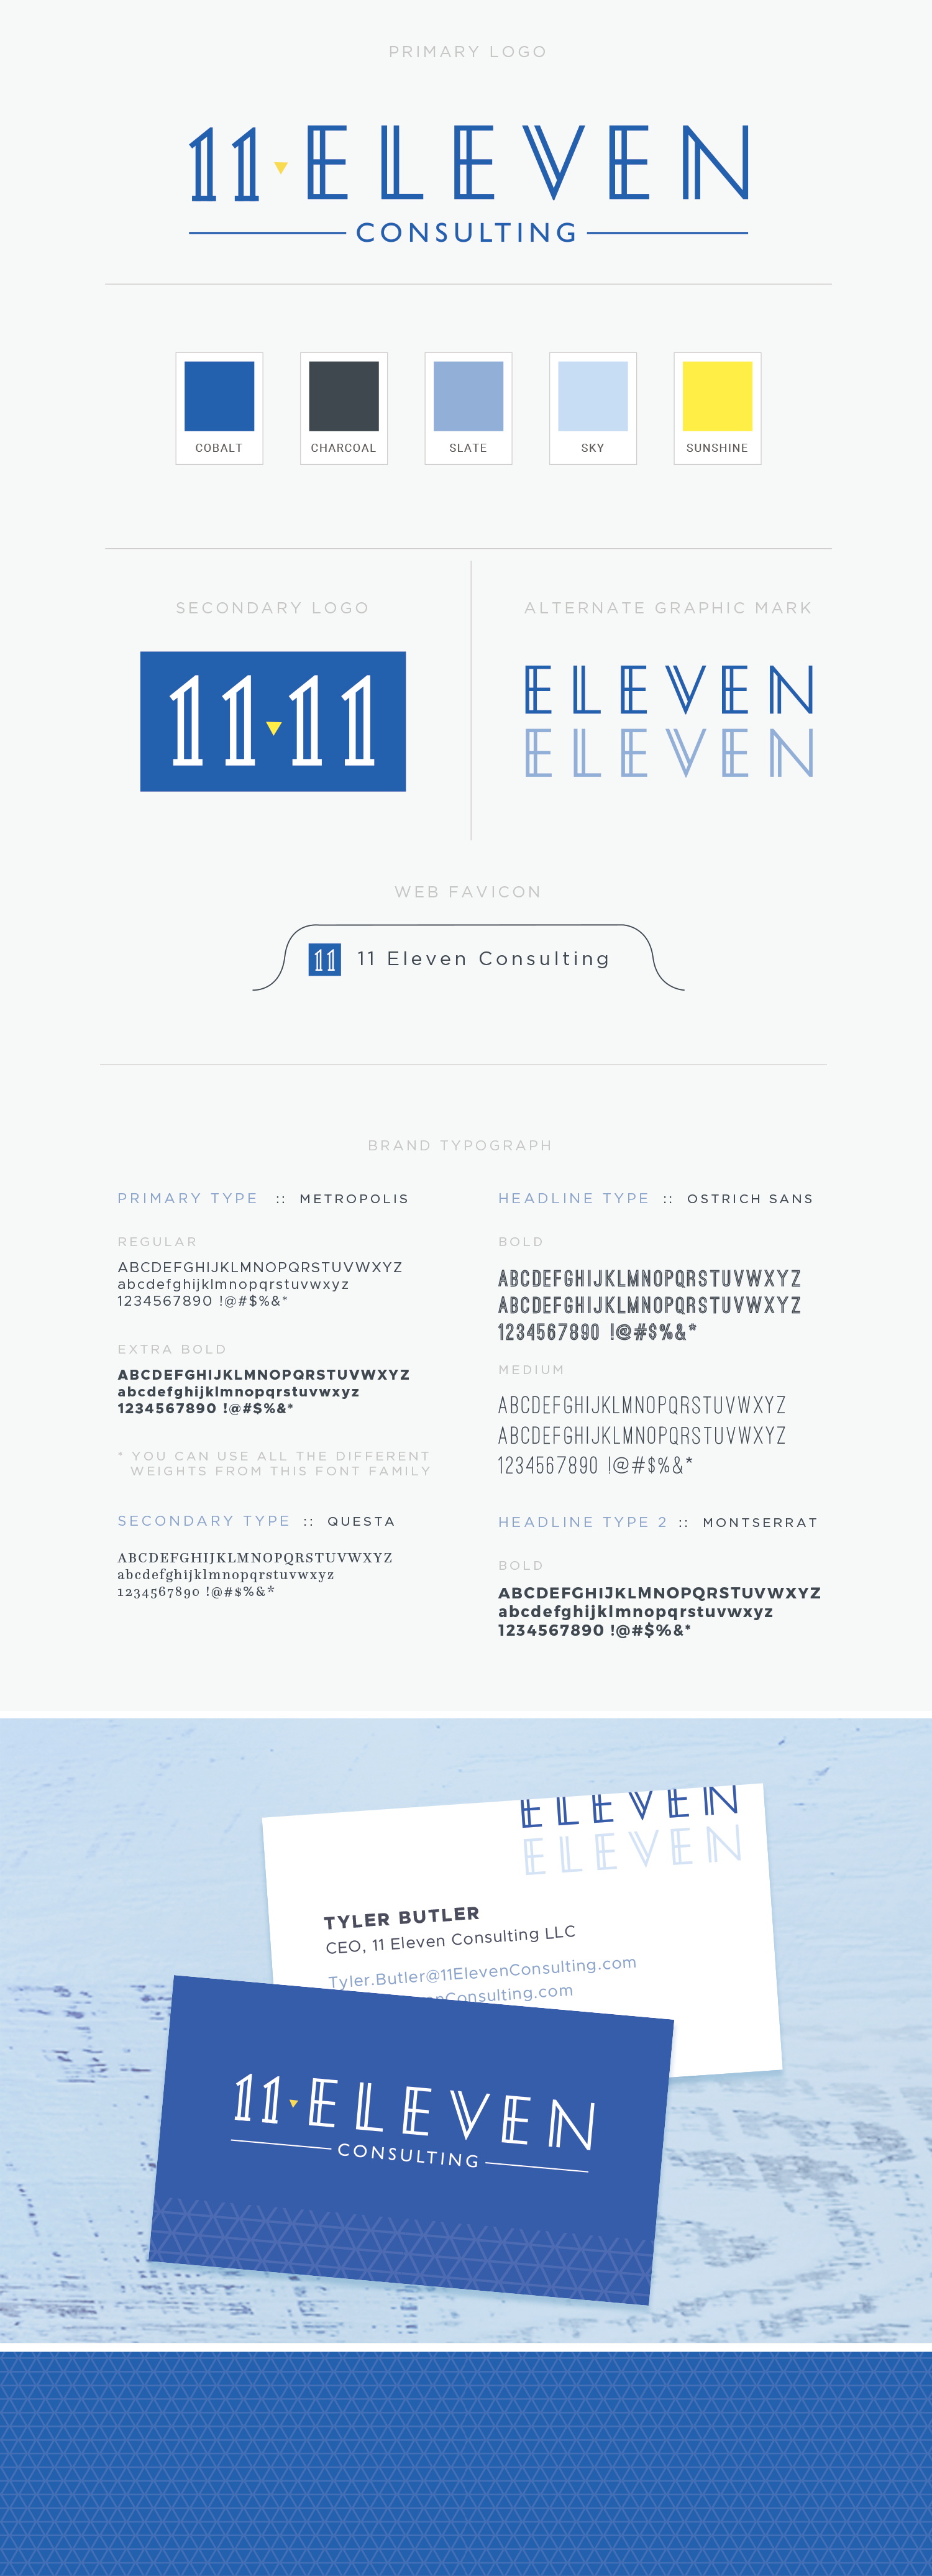 11 Eleven Consulting branding by Pace Creative Design Studio